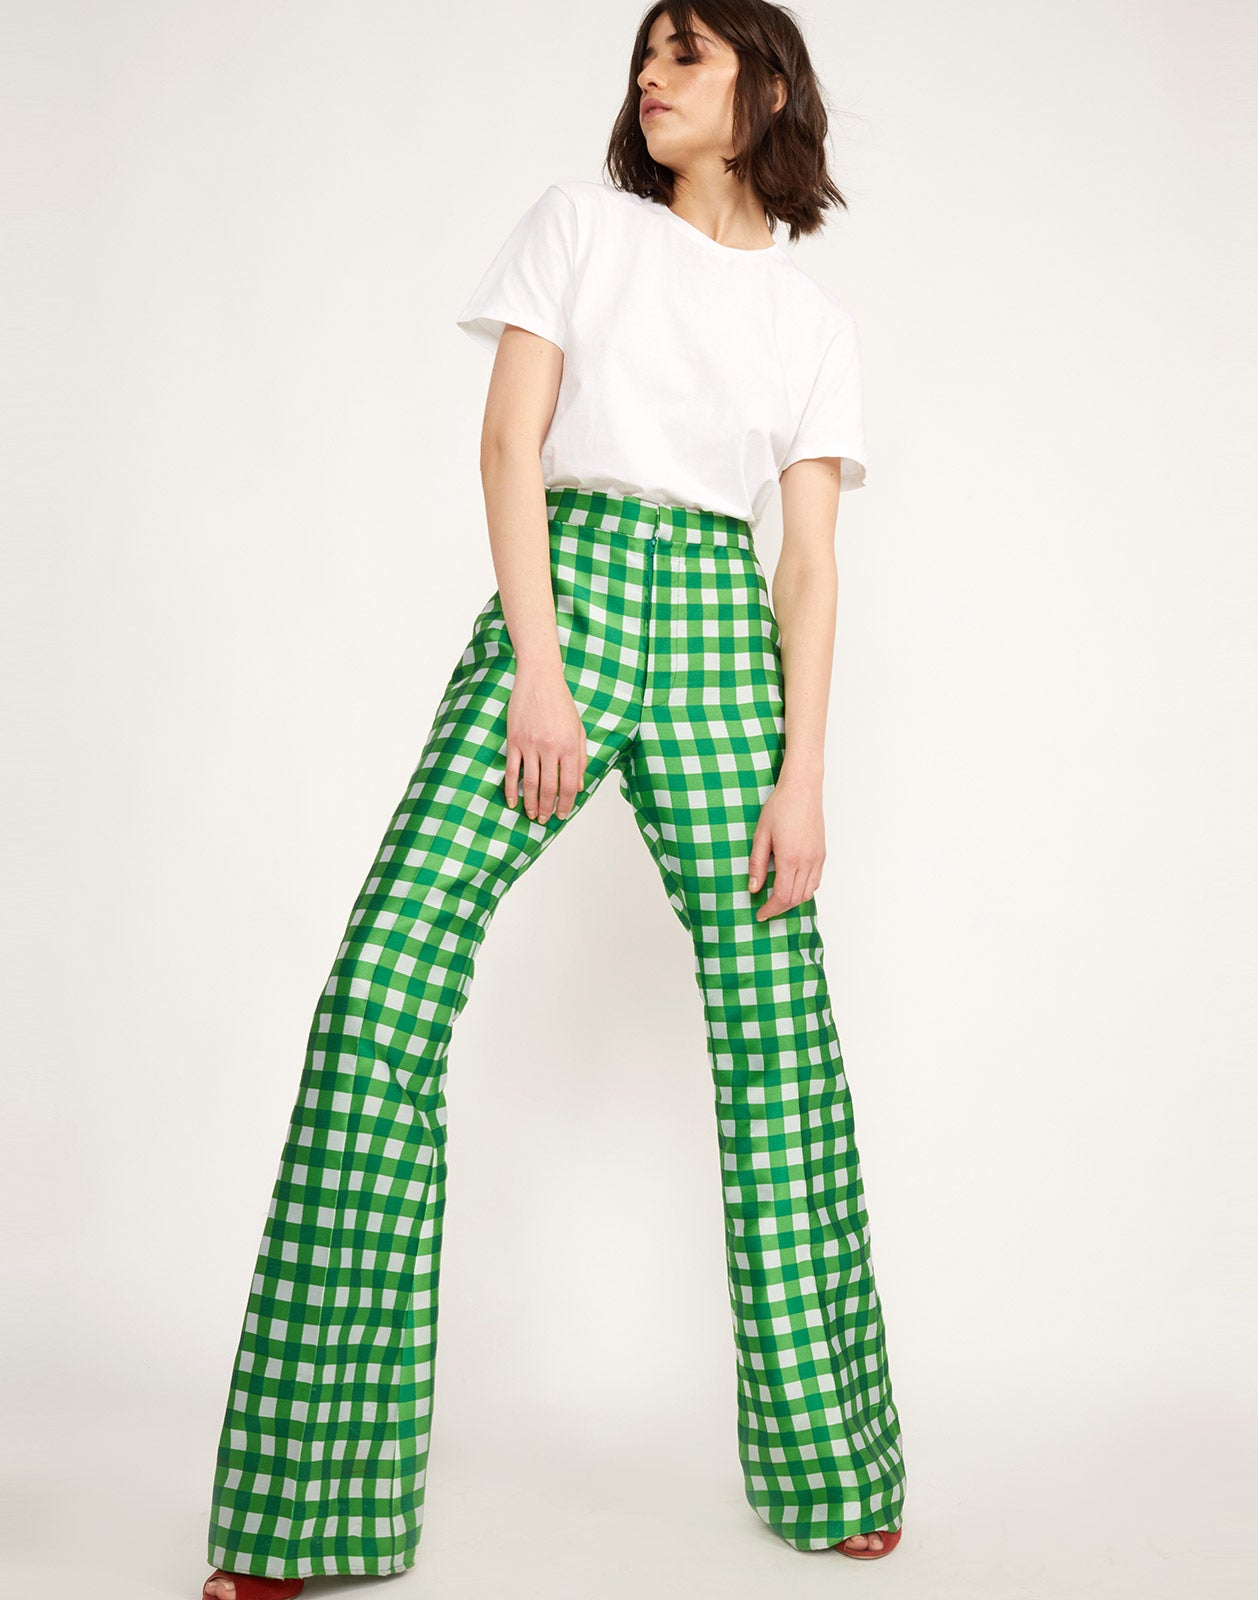 Additional View of Davis Gingham Pant